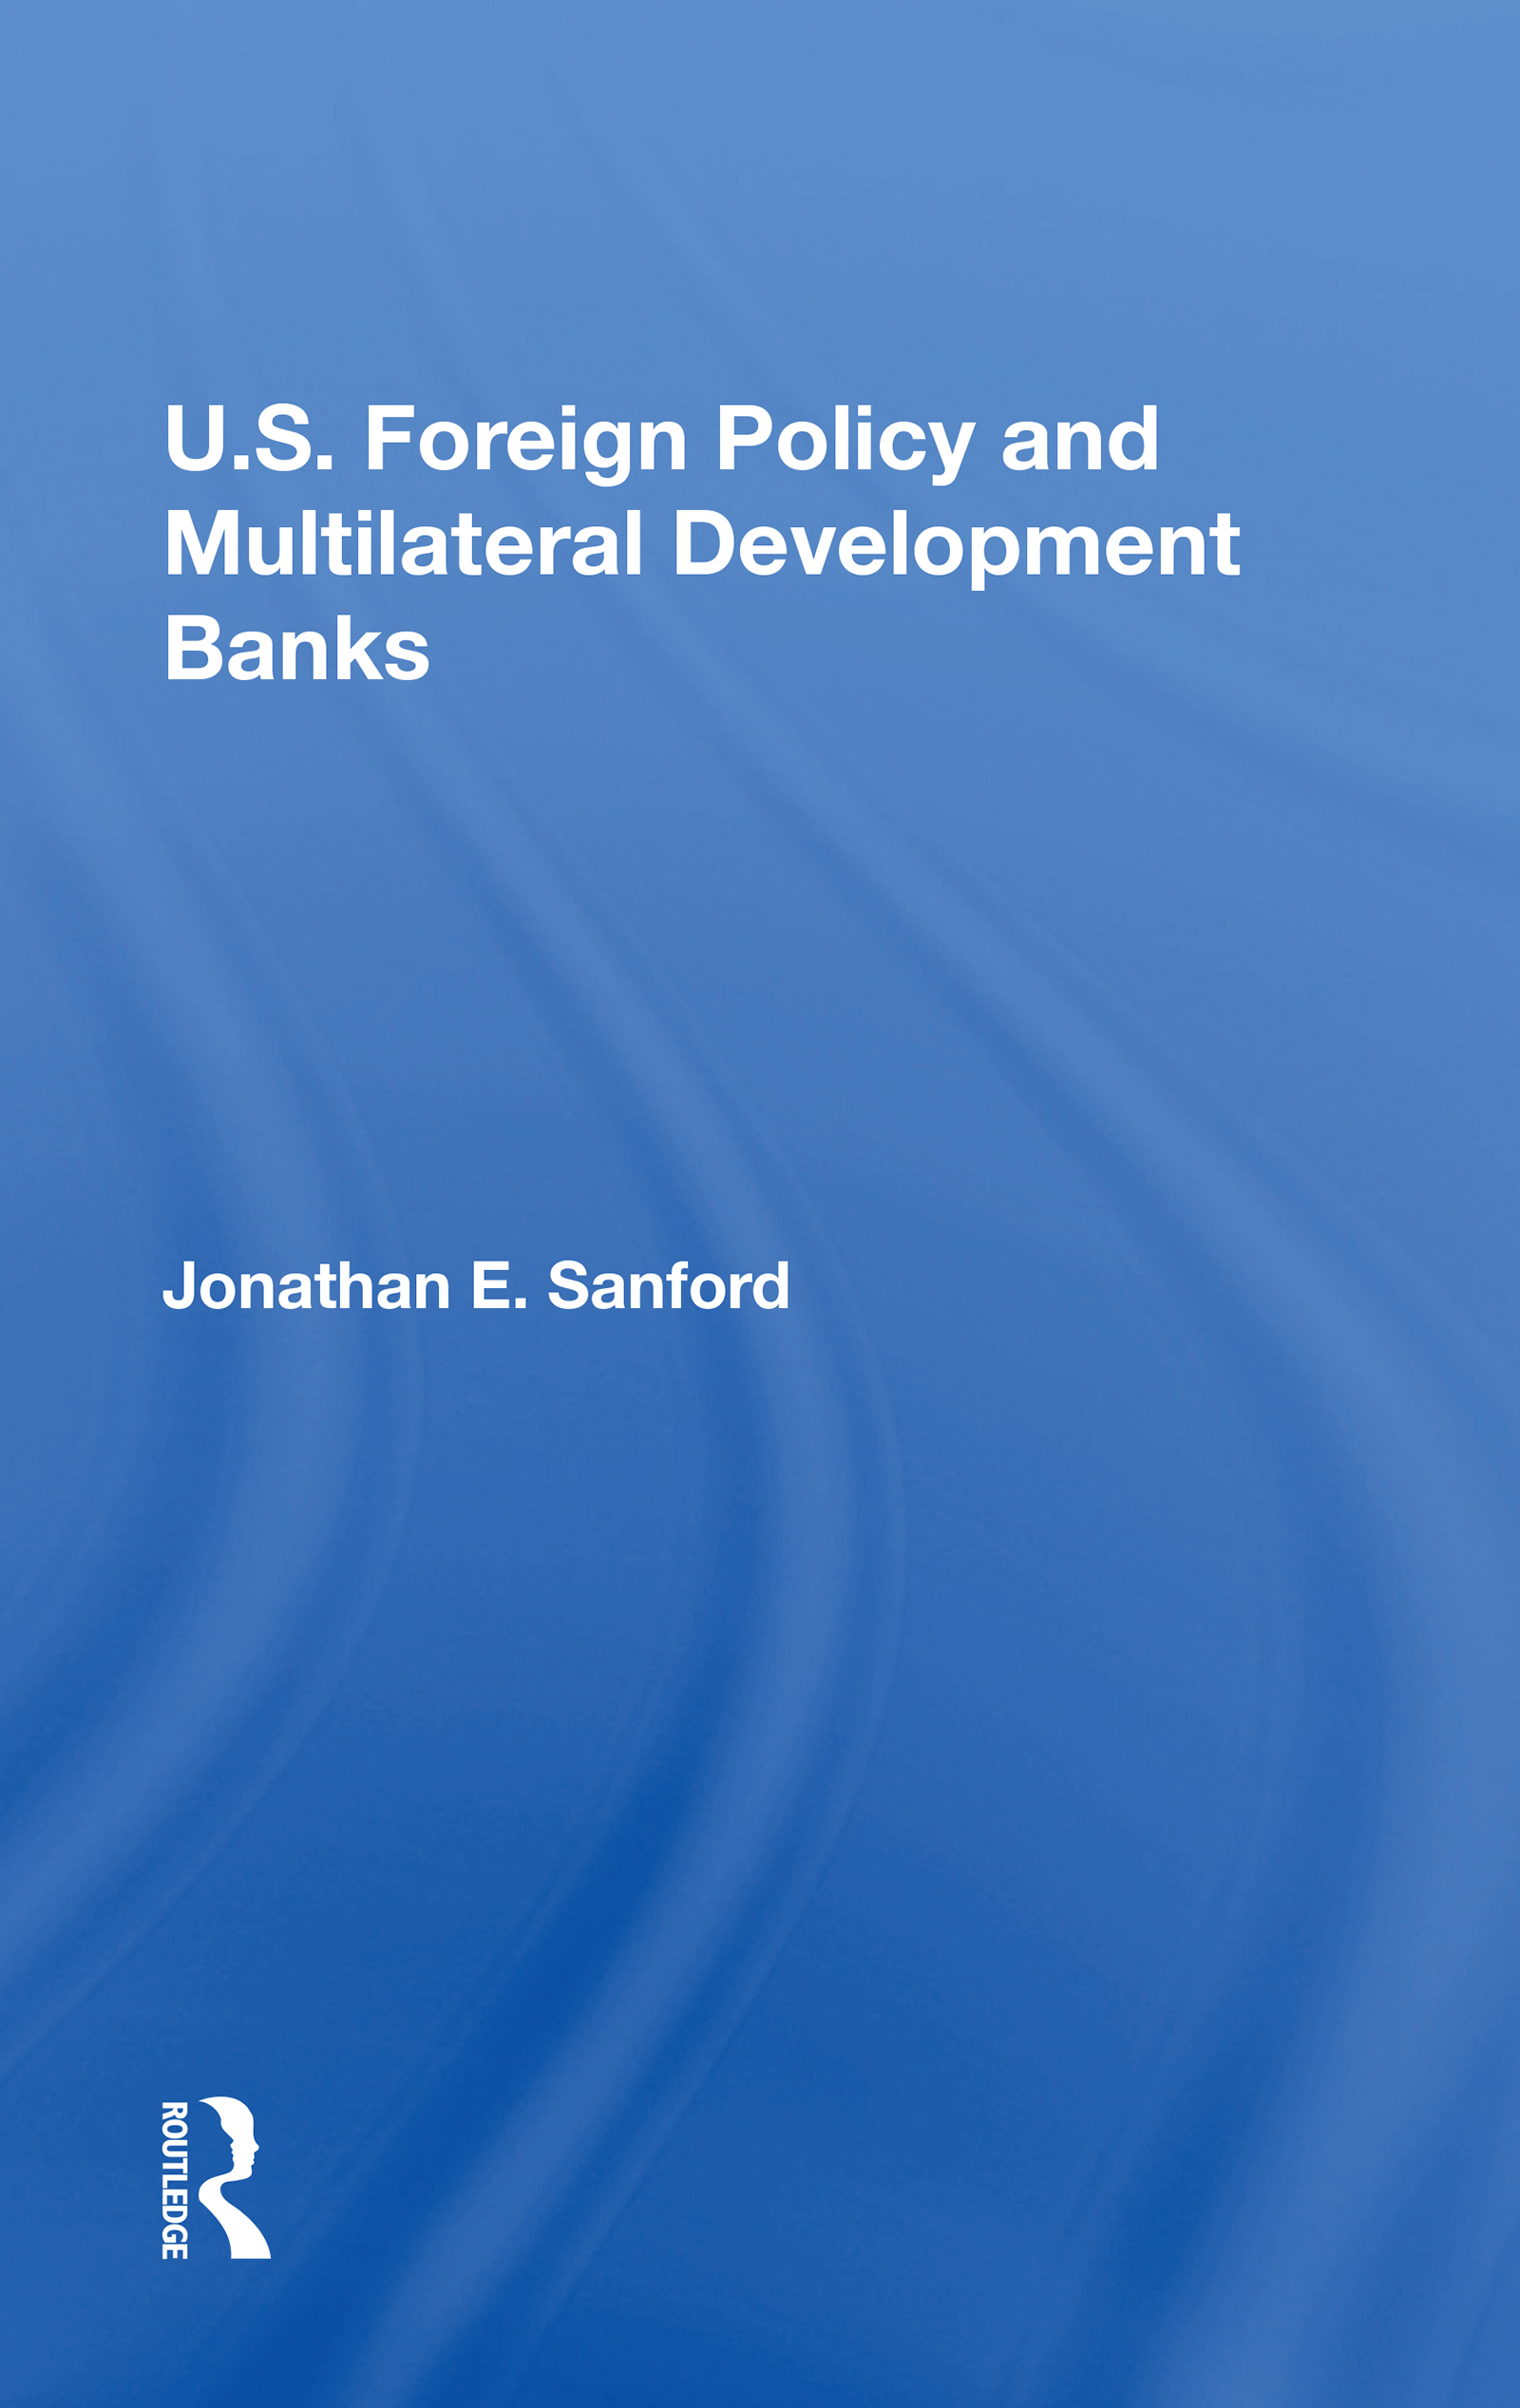 U.S. Foreign Policy And Multilateral Development Banks